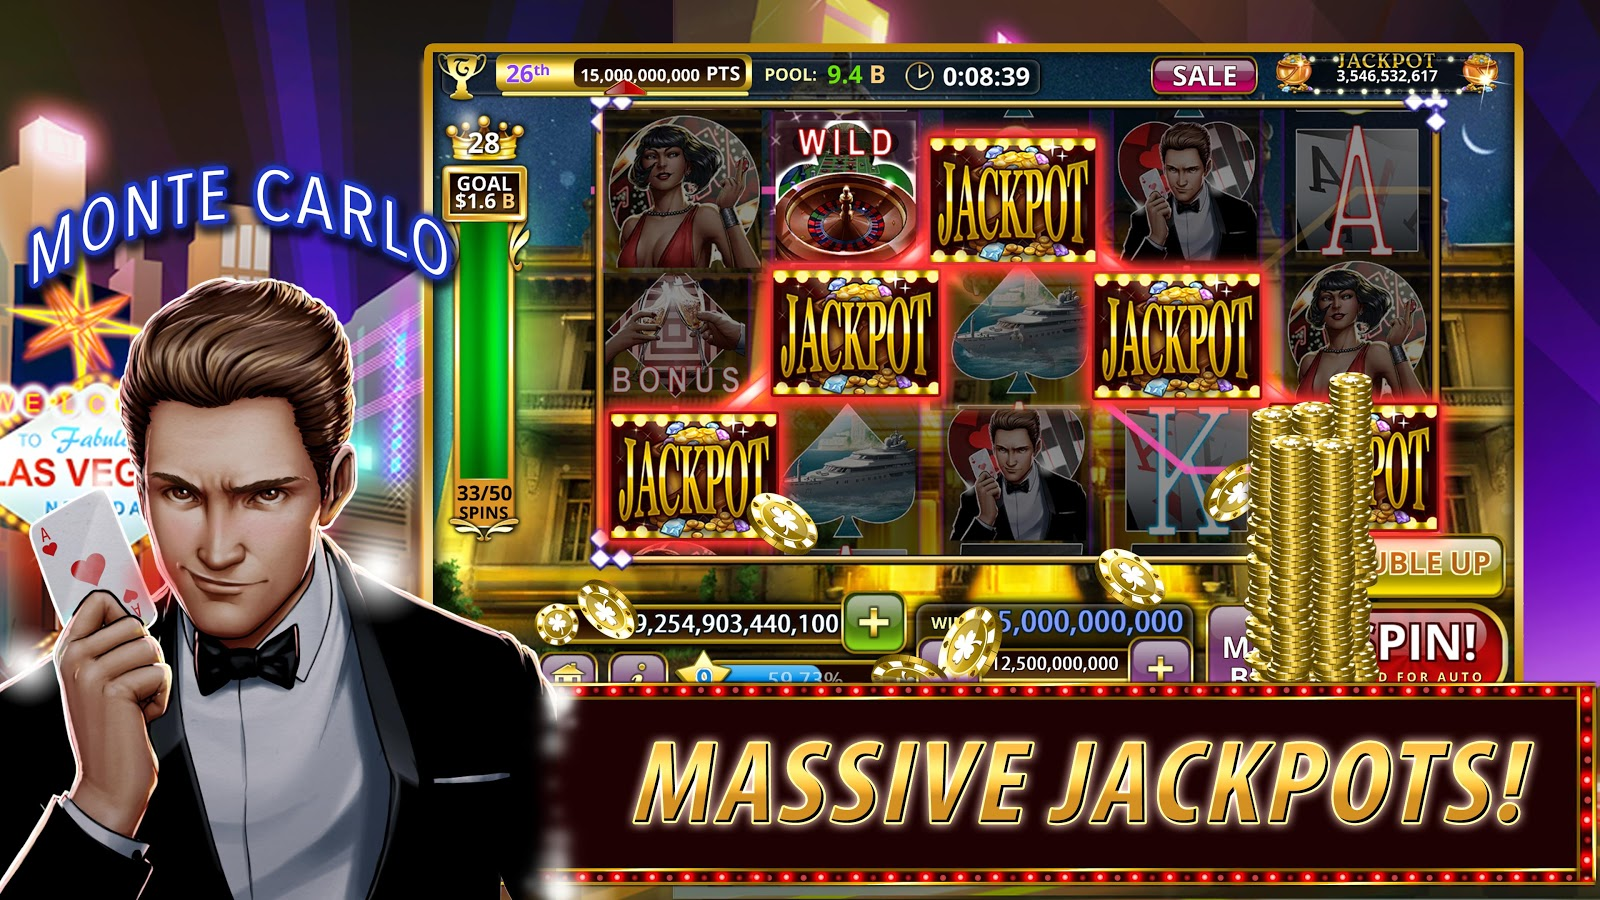 Double Happiness Slot Machine - Free Play Slots or to Win Real Money